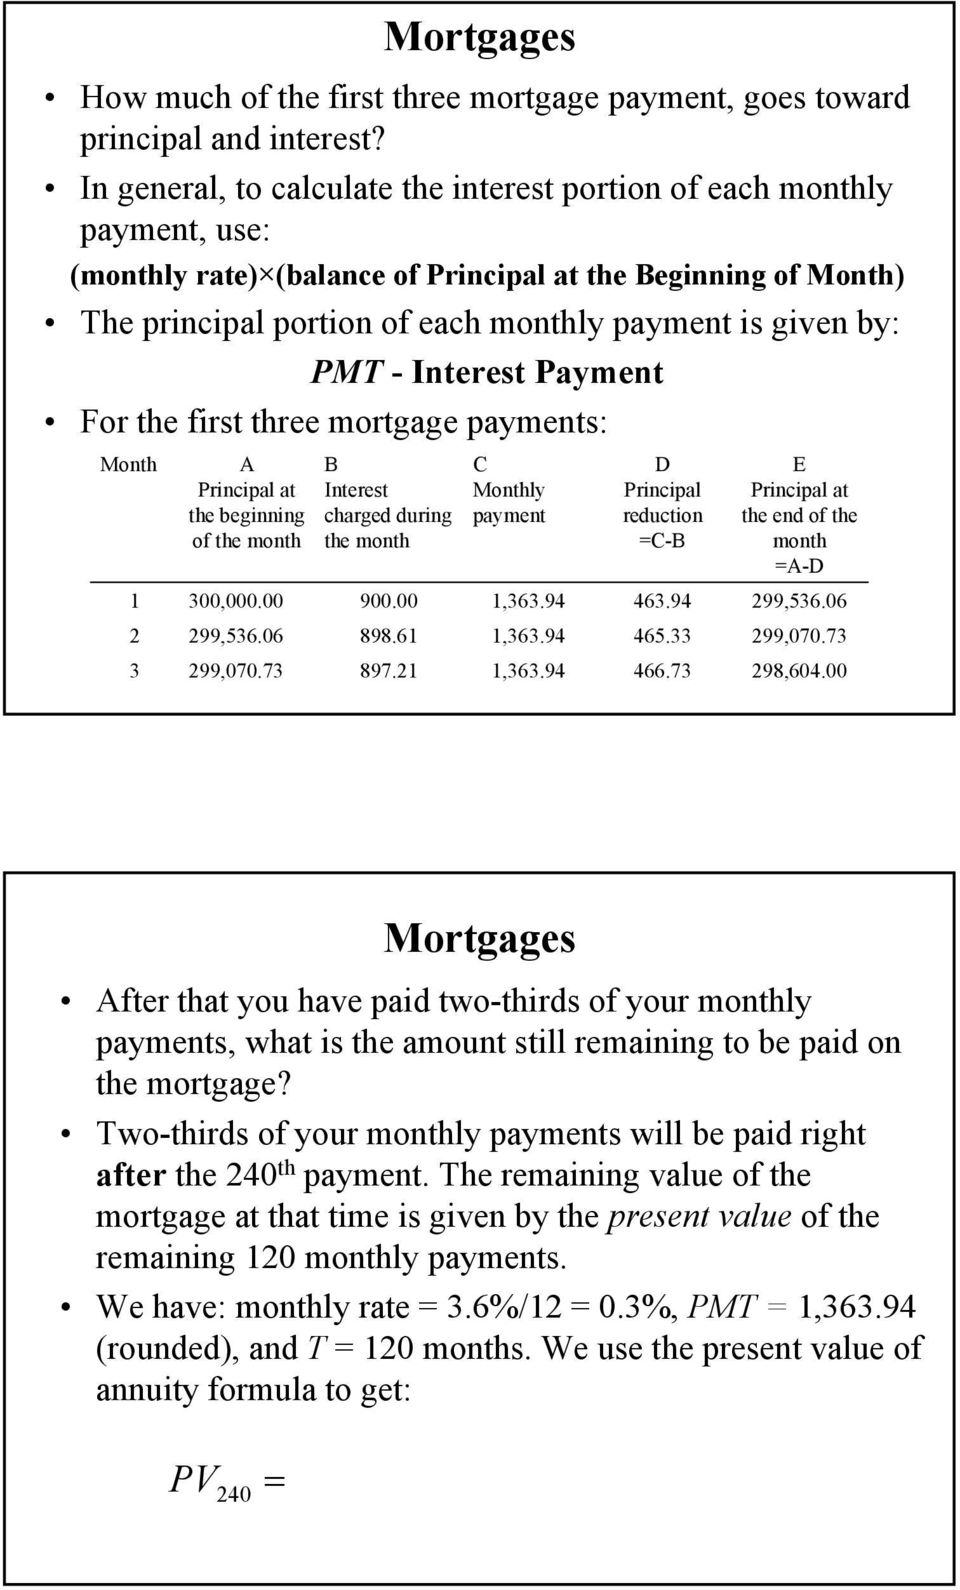 PMT - Interest Payment For the first three mortgage payments: Month 3 A Principal at the beginning of the month 300,000.00 99,536.06 99,070.73 B Interest charged during the month 900.00 898.6 897.